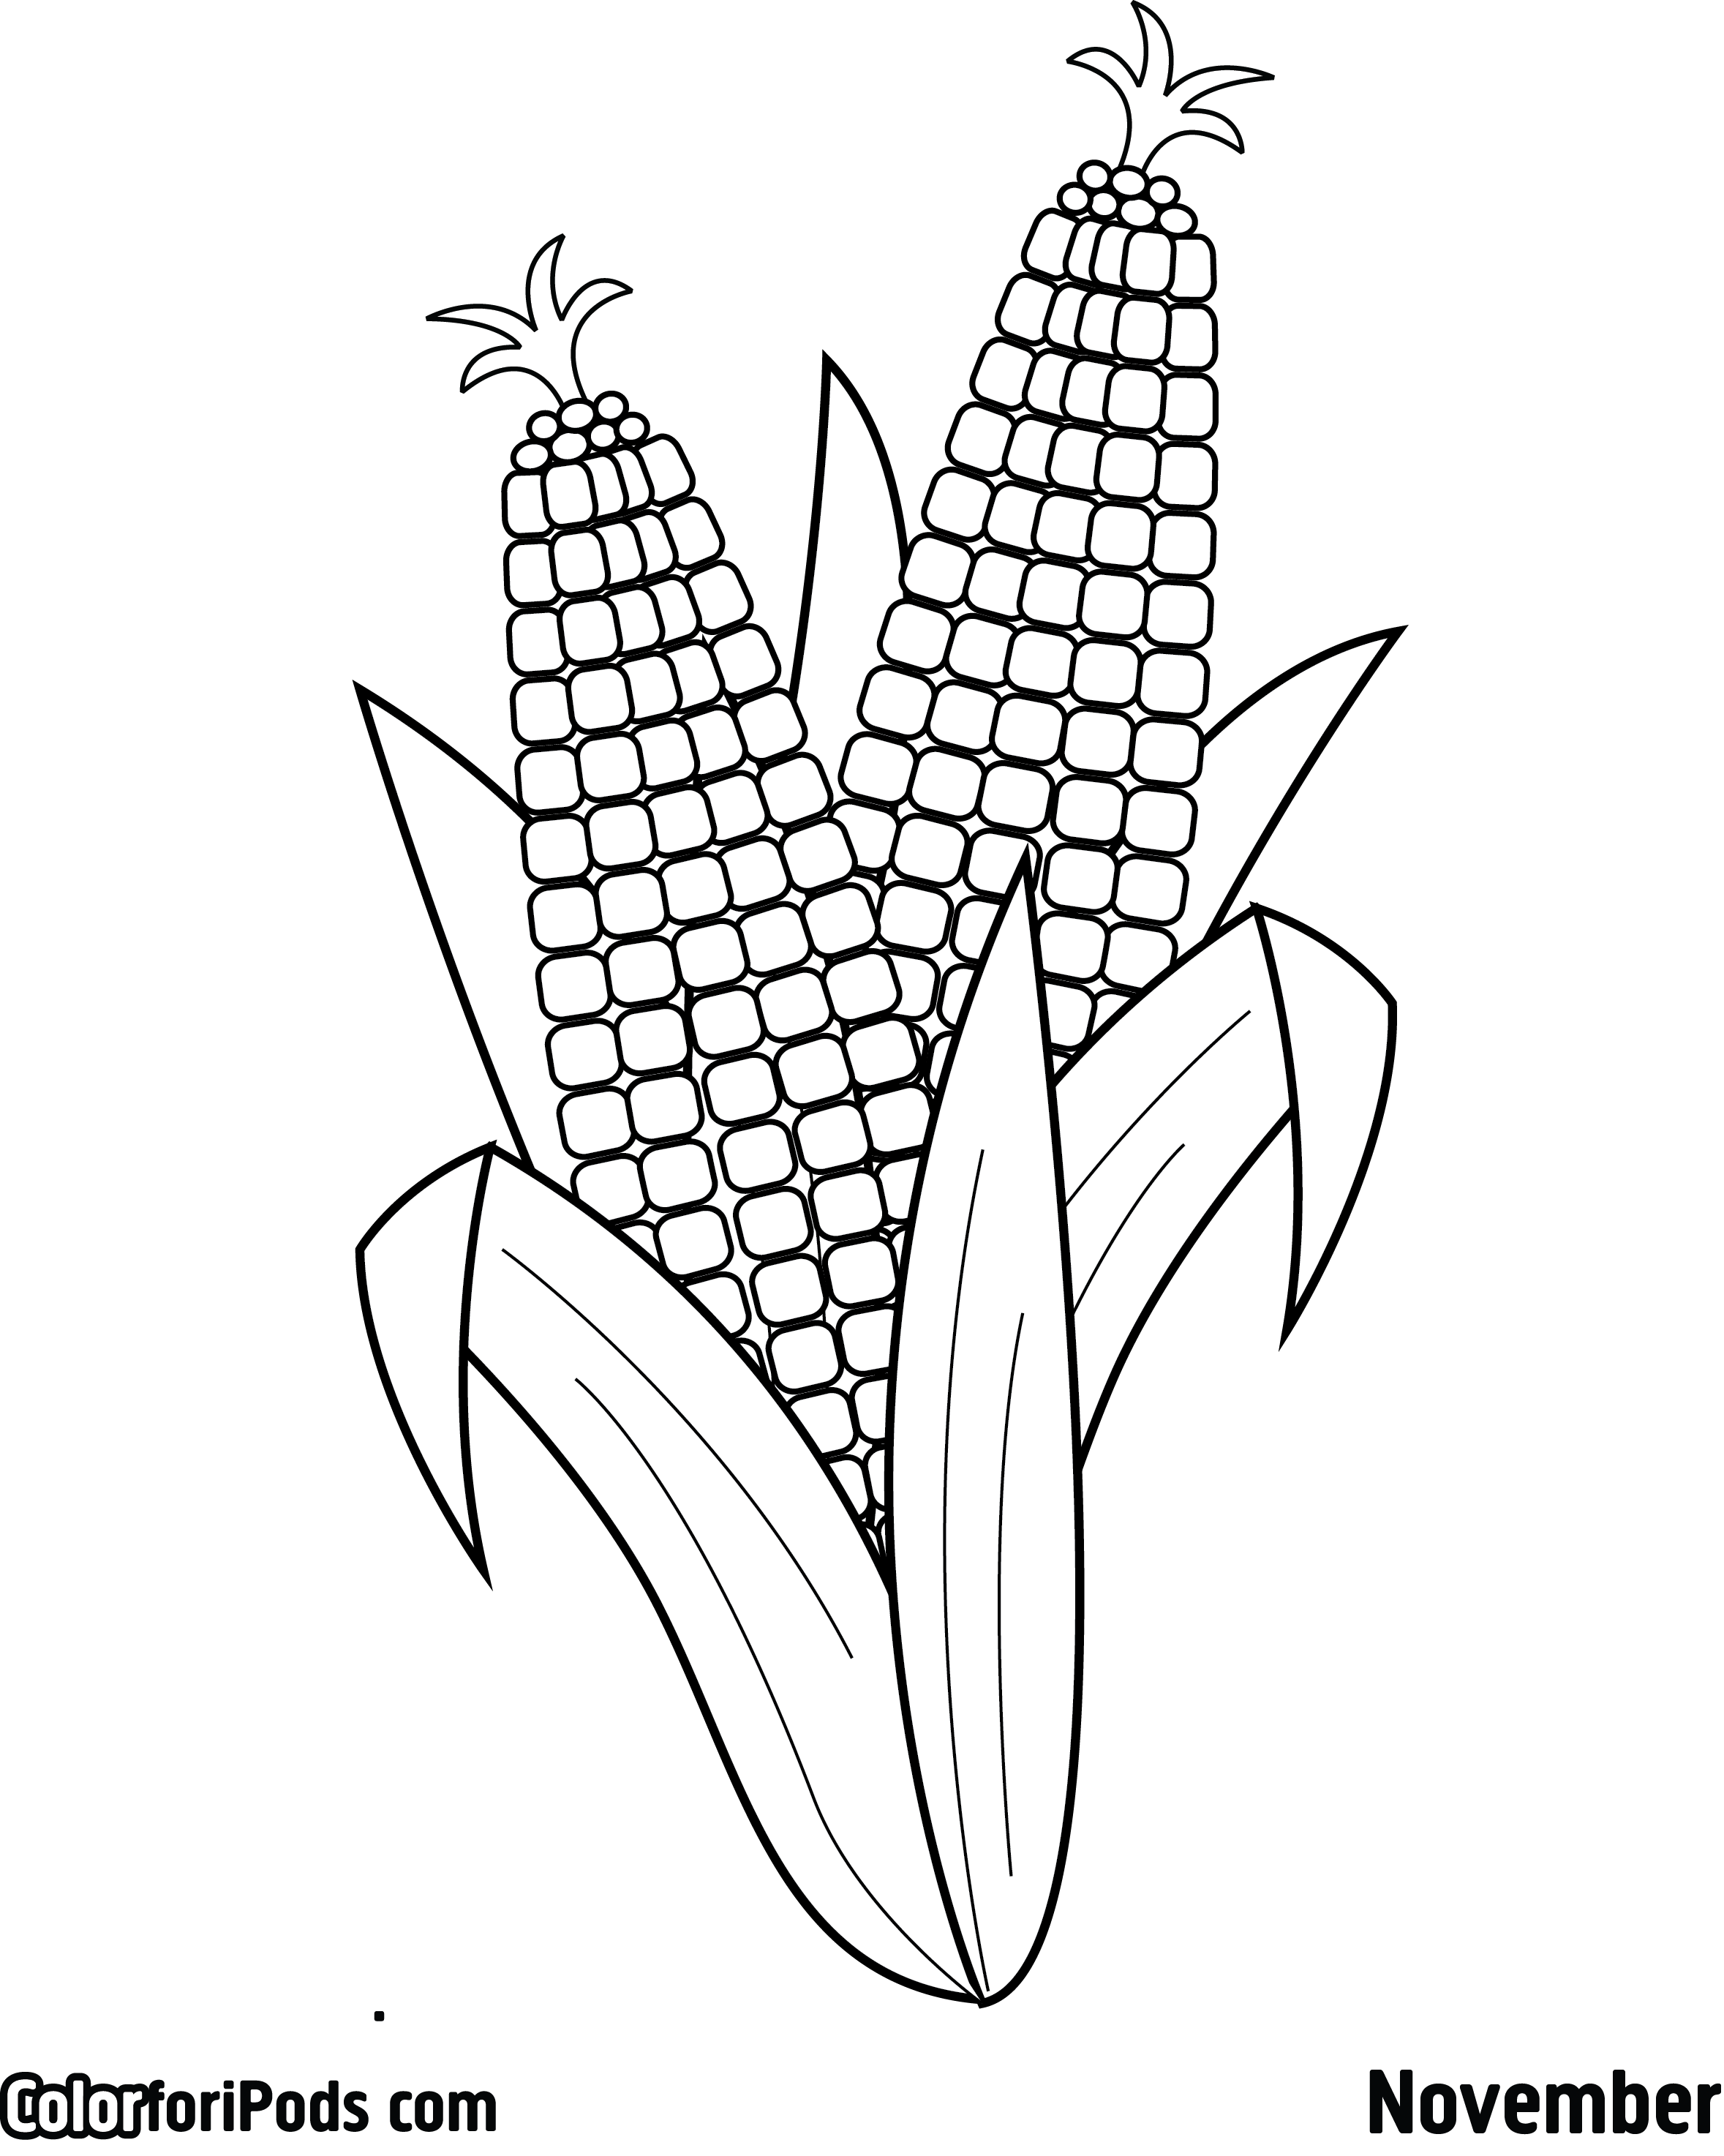 Corn on the cob coloring sheet sketch coloring page for Corn stalk template